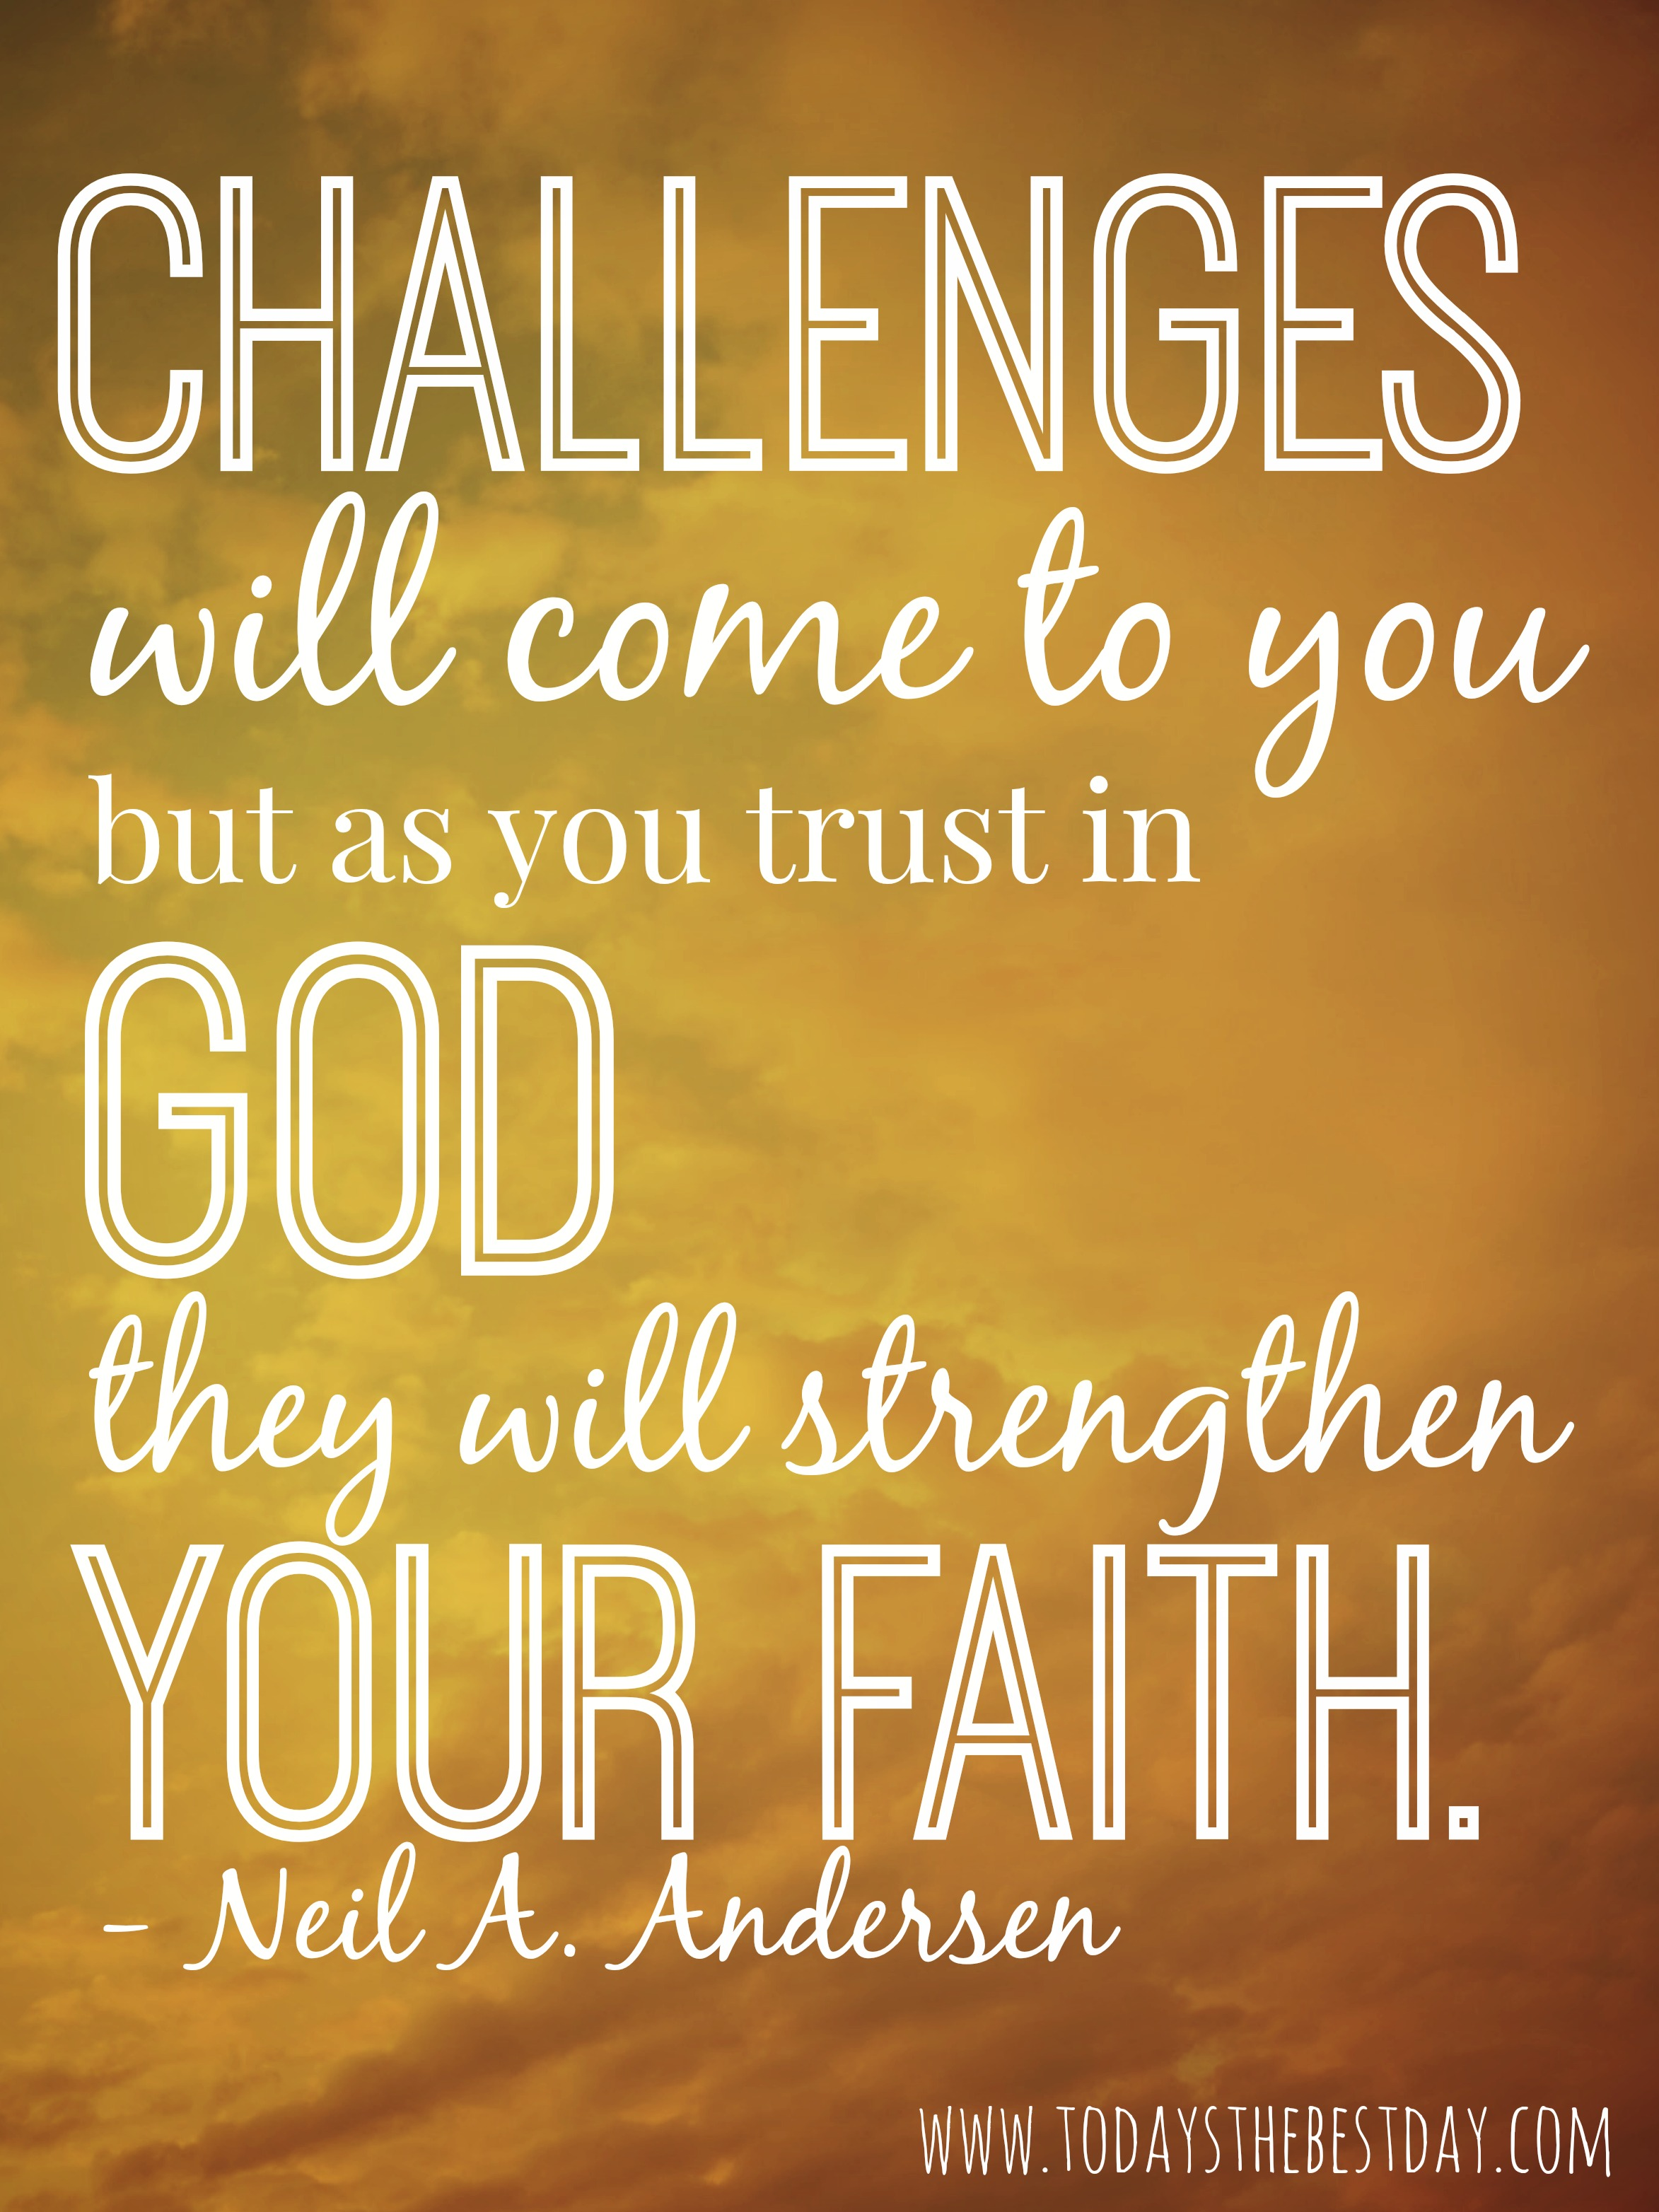 Quotes About Challenges Lds General Conference 2014 Quotes  Today's The Best Day